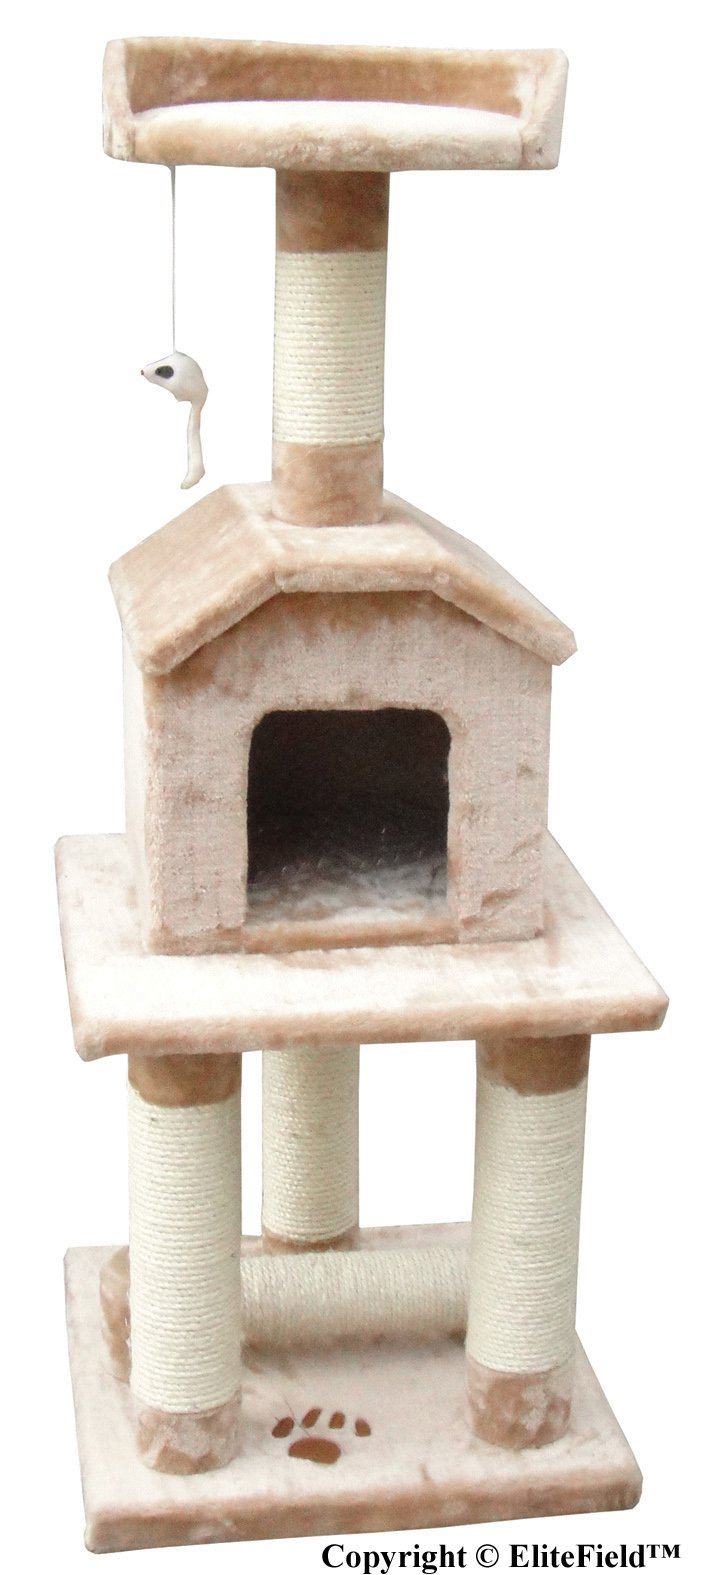 EliteField Cat Tree, Scratcher Furniture Condo House, Multiple Sizes Available (18''L x 18'' W x 45'' H)